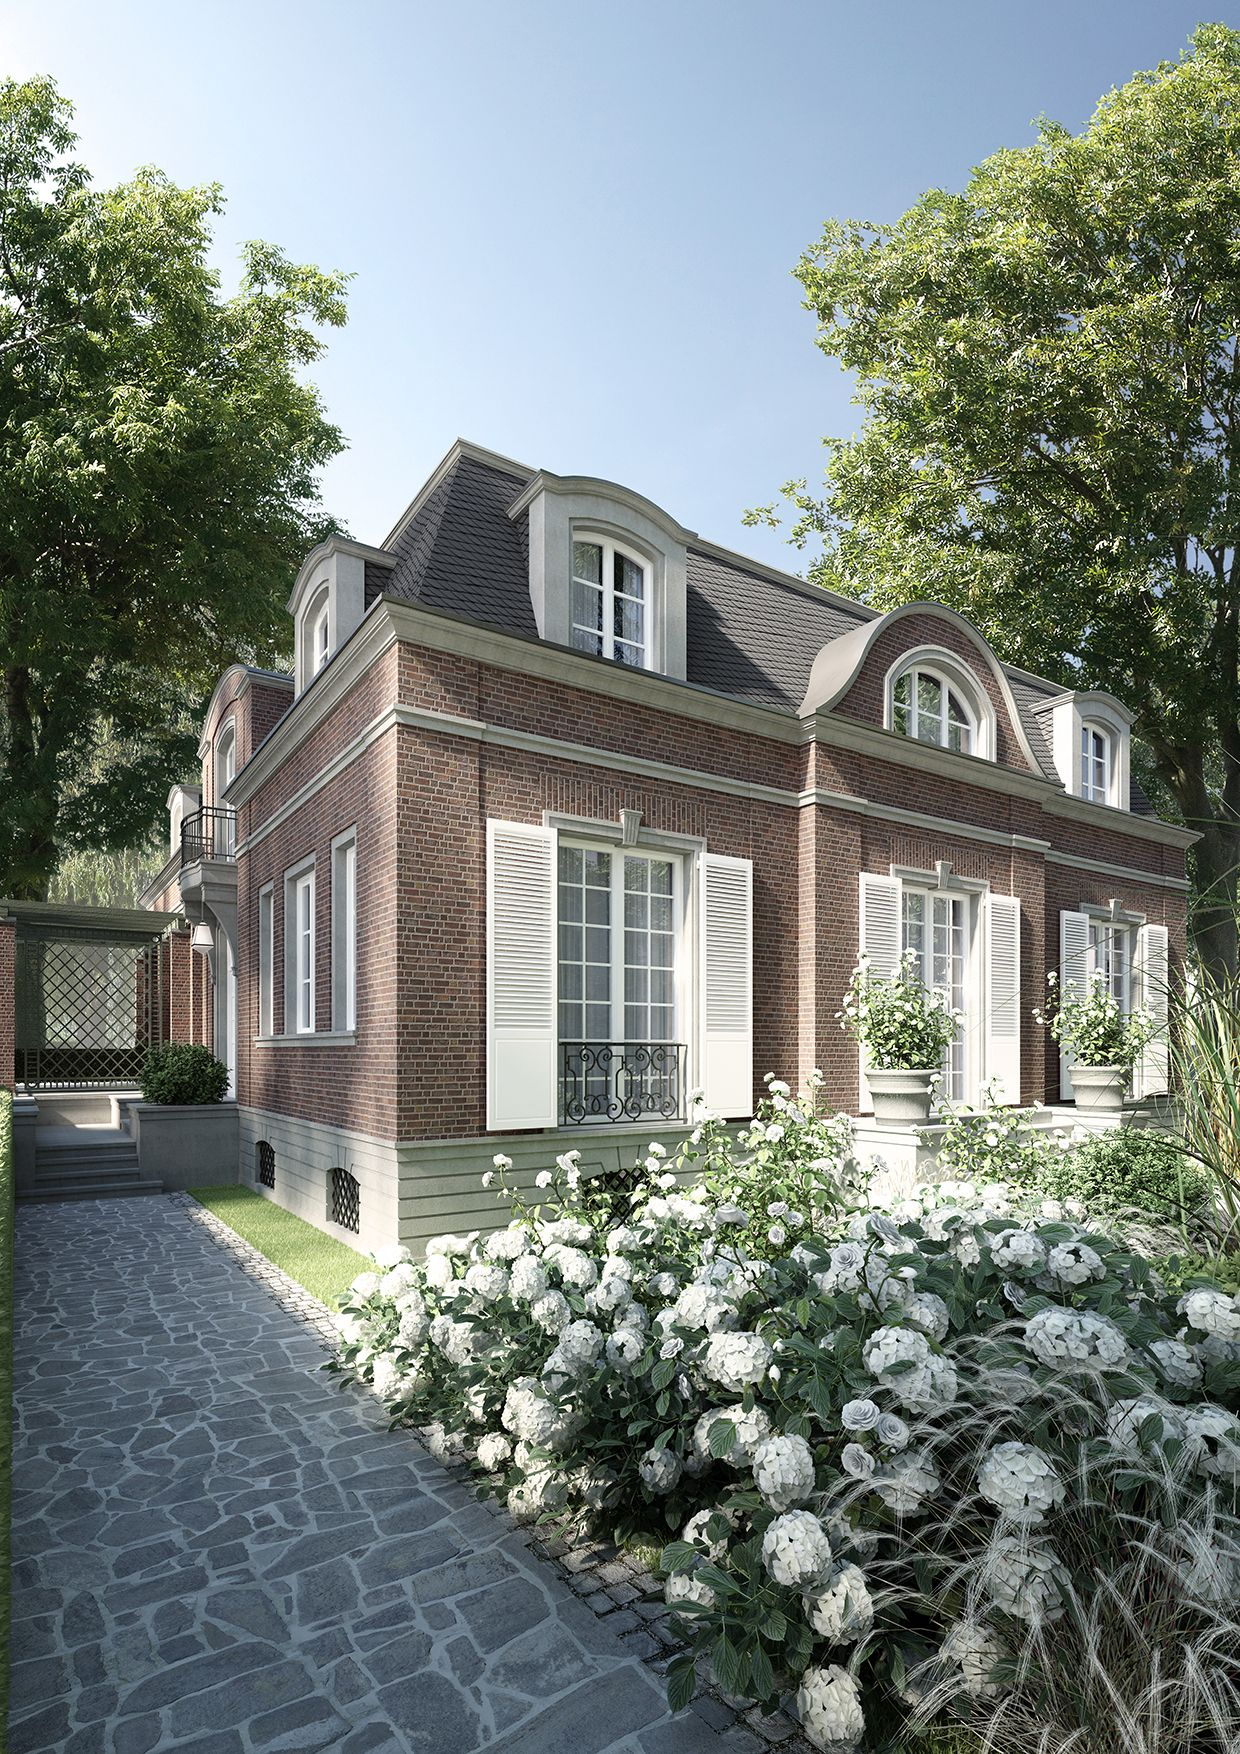 Villa in hamburg projekte pinterest architektur for Architektur 30er